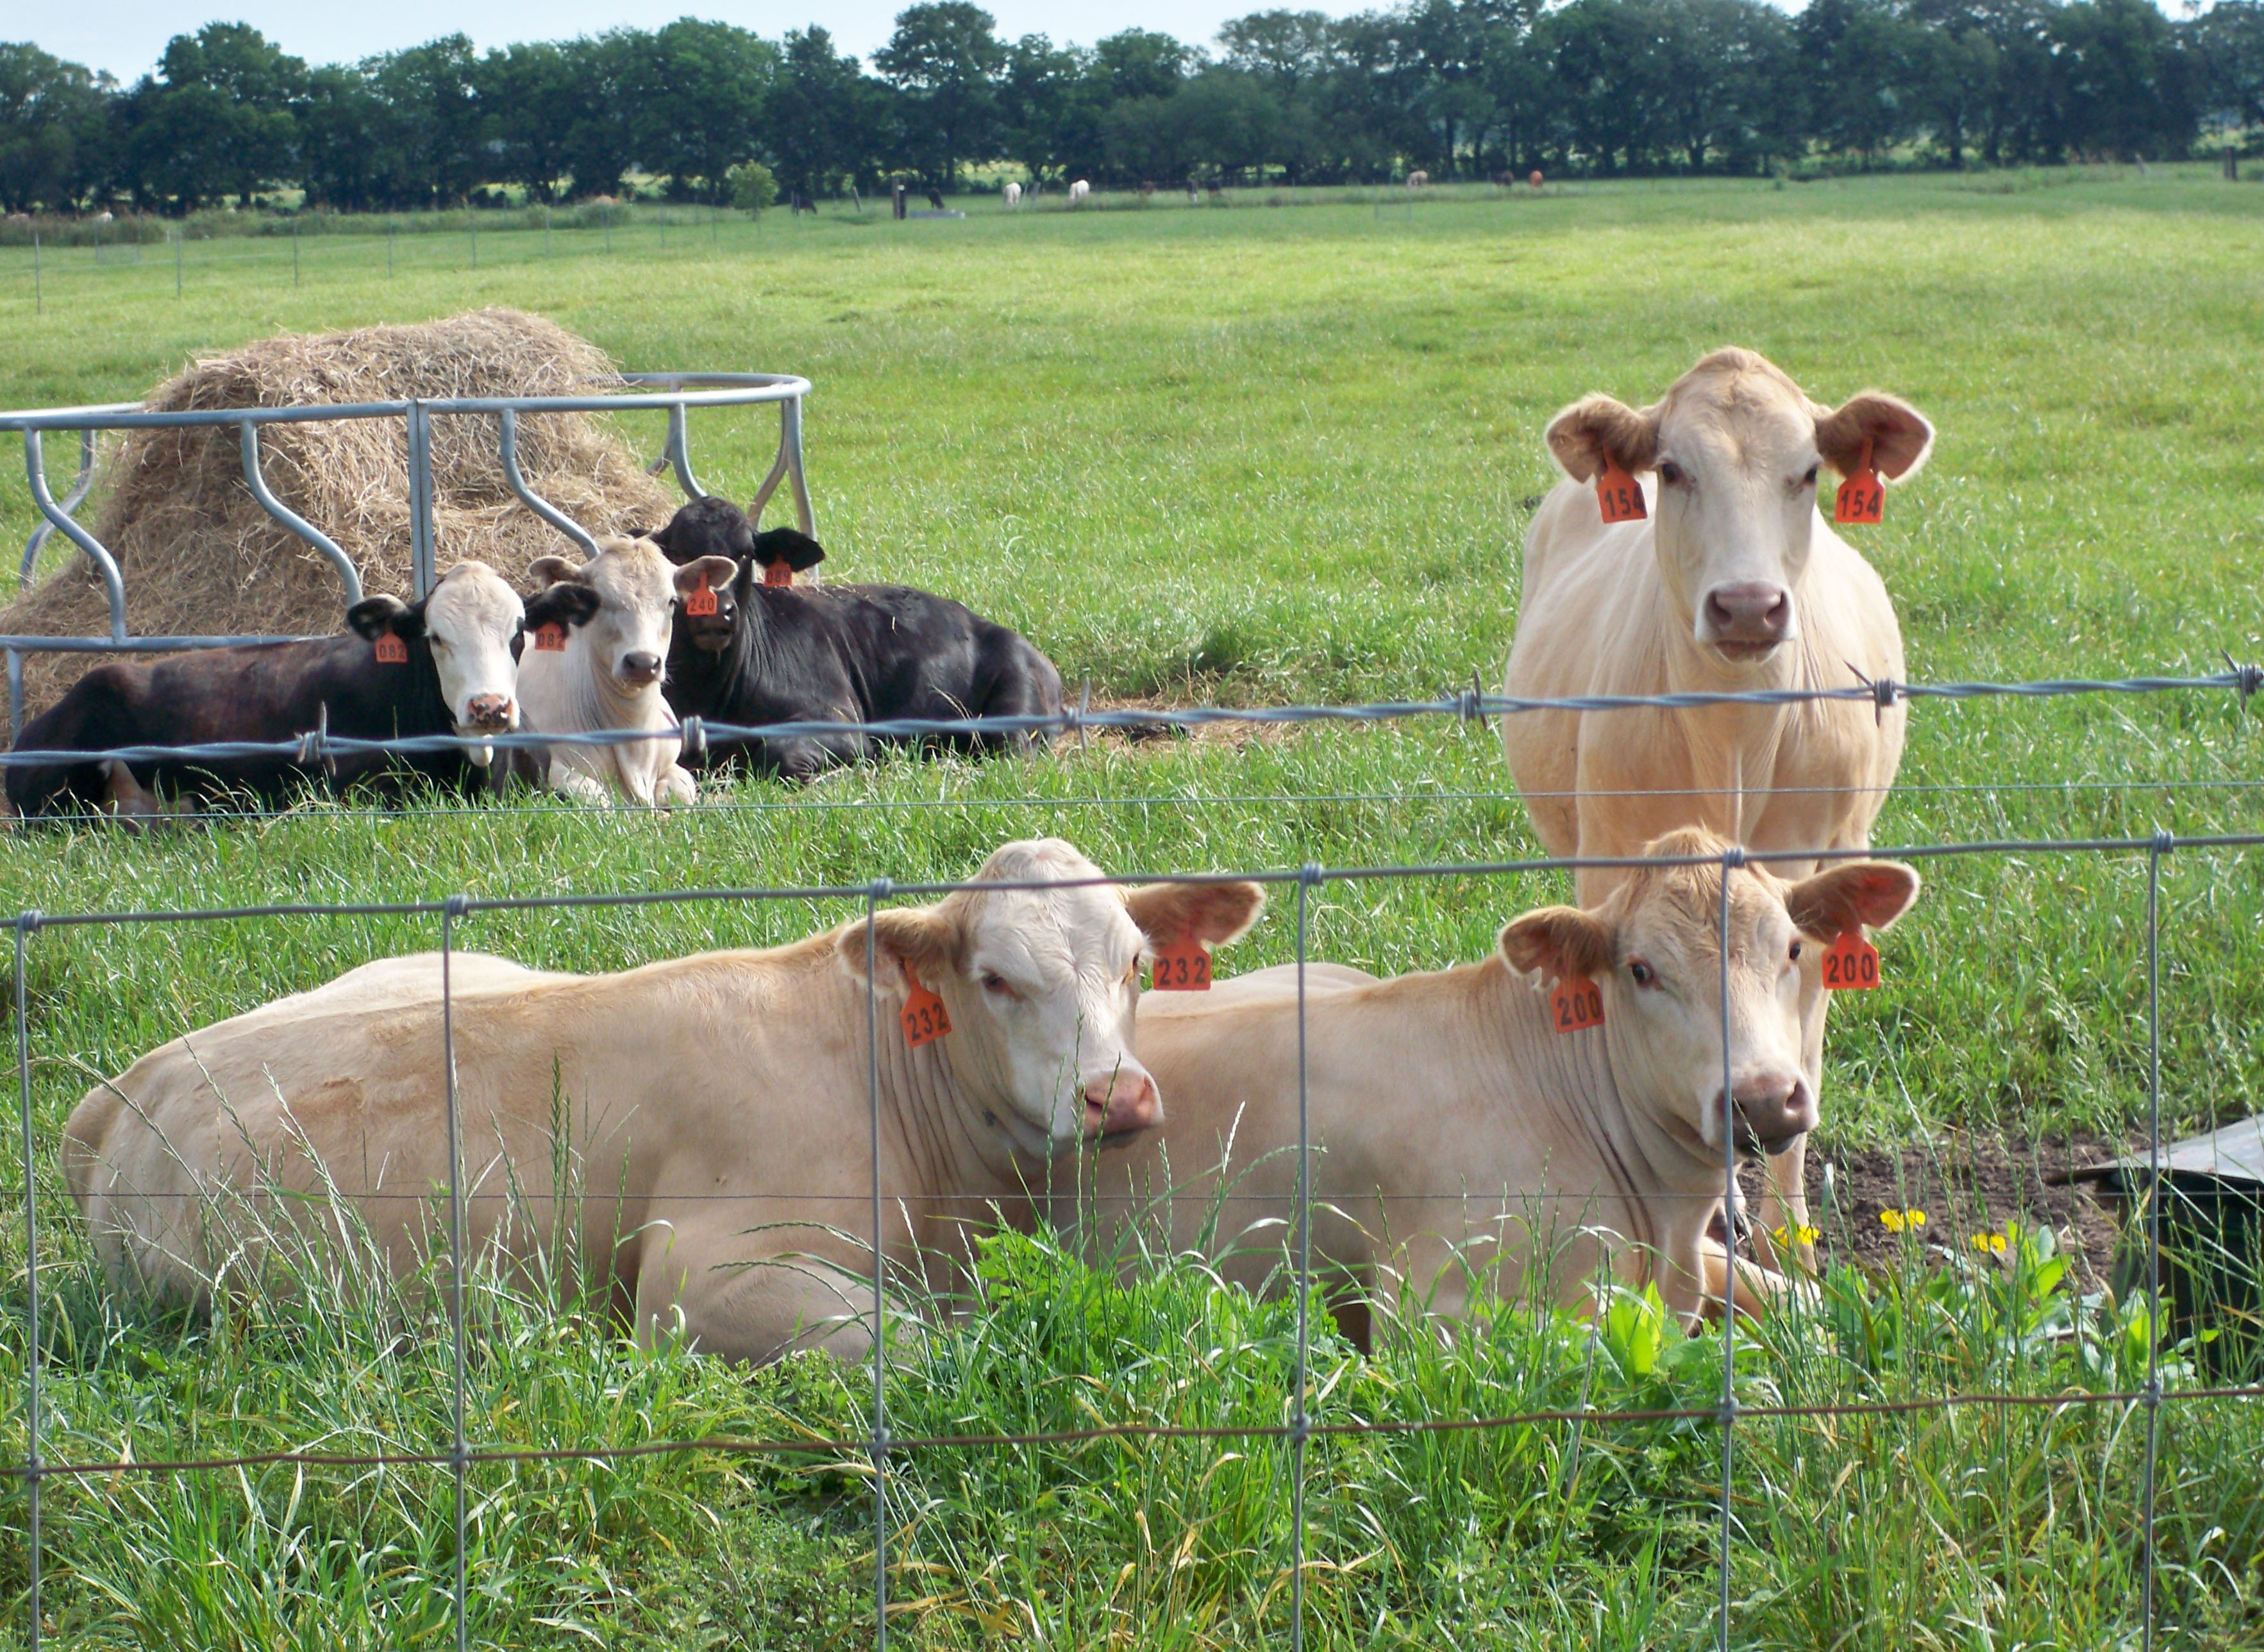 Complexities of Antimicrobial Use in Livestock and Poultry Production